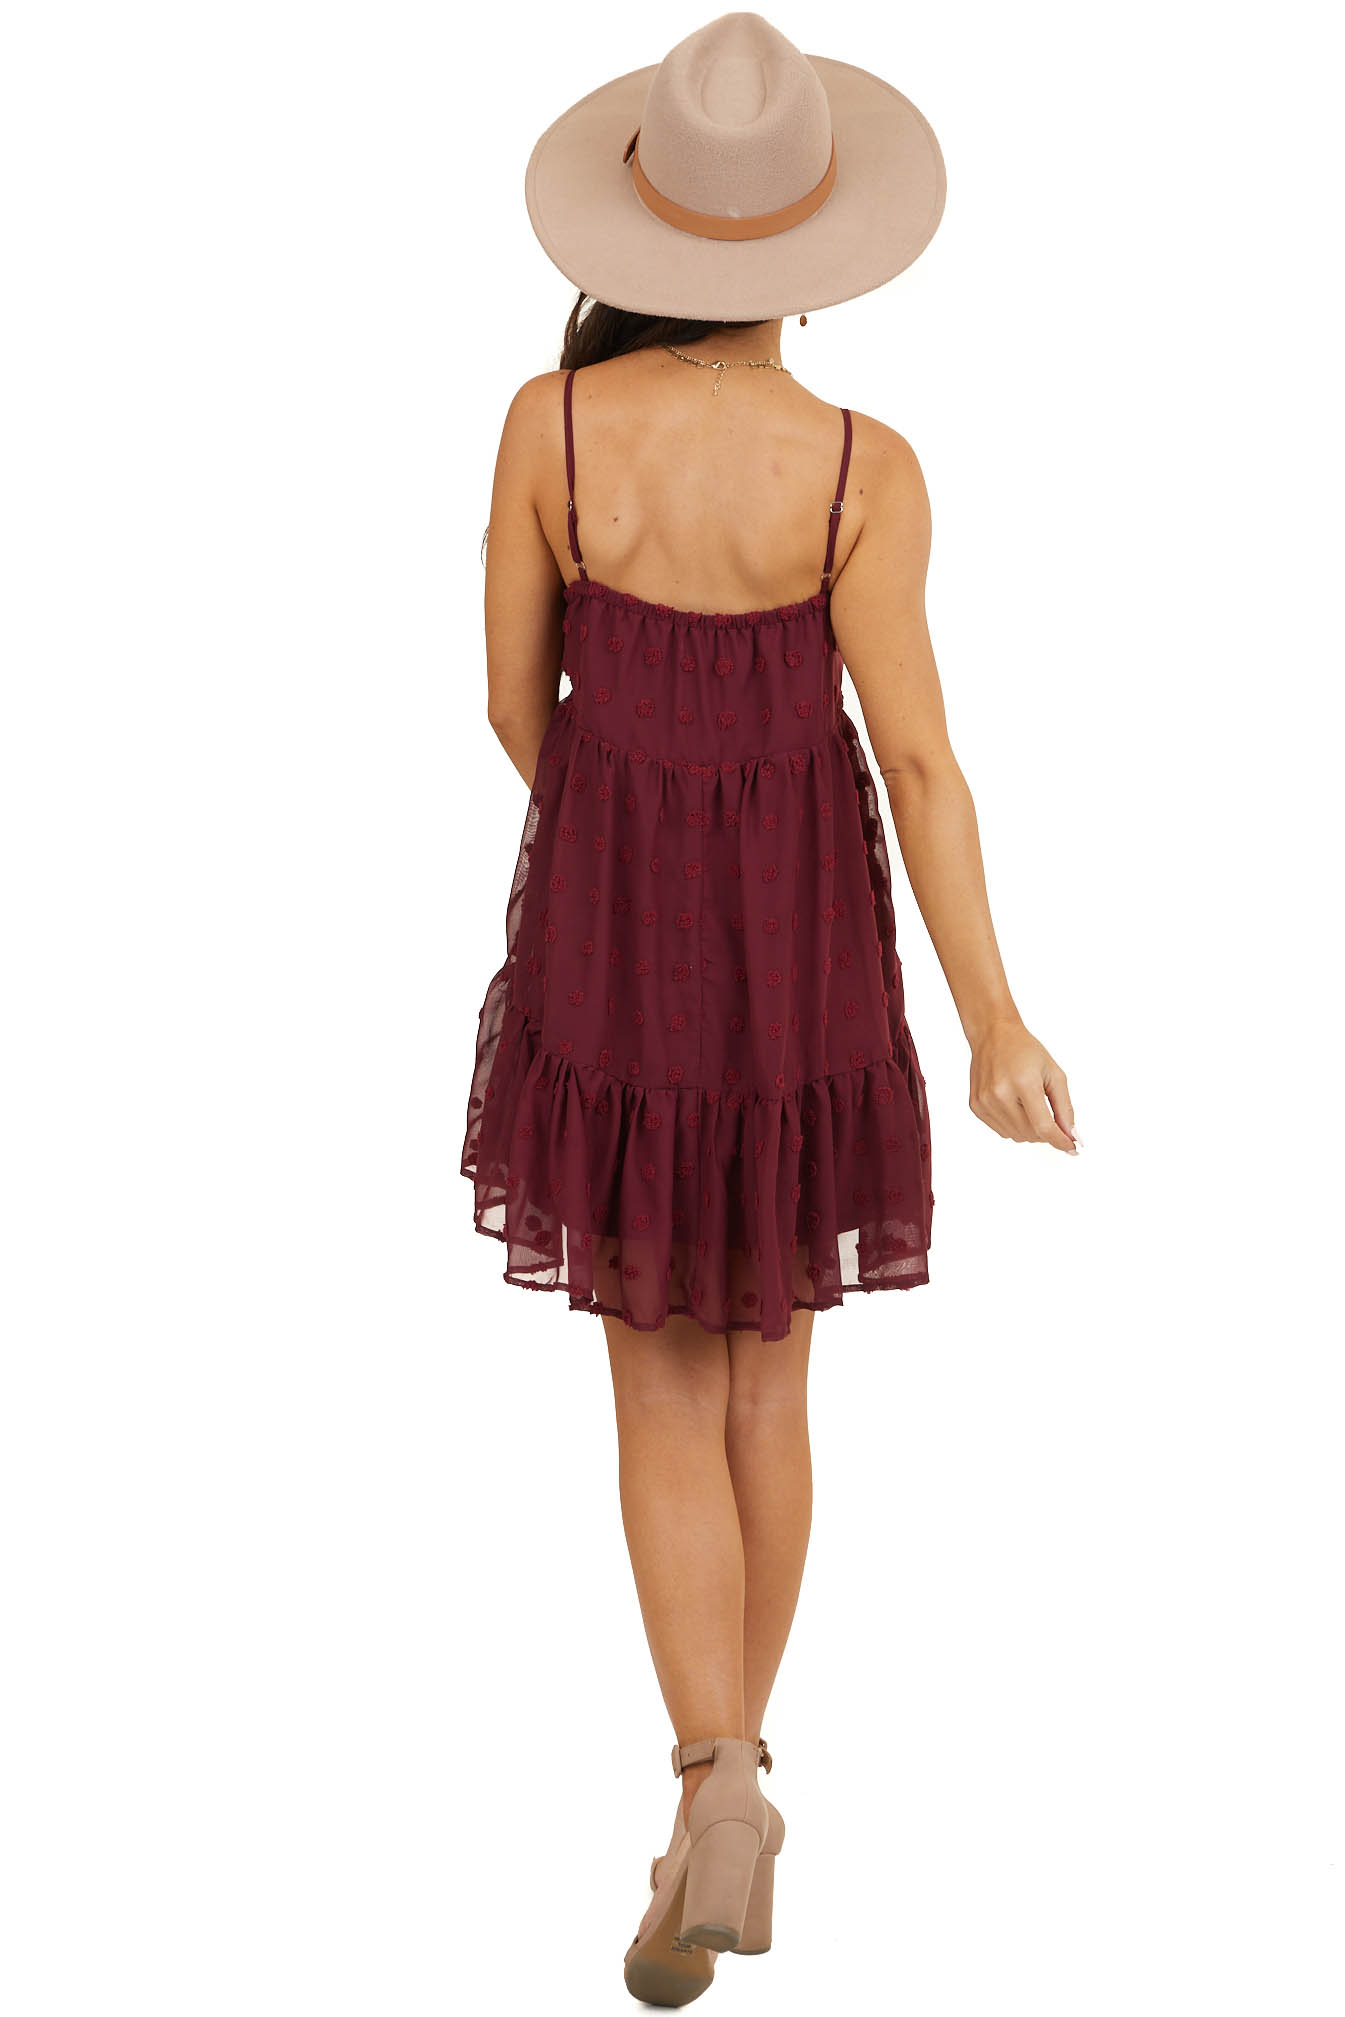 Wine Large Swiss Dot Spaghetti Strap Dress